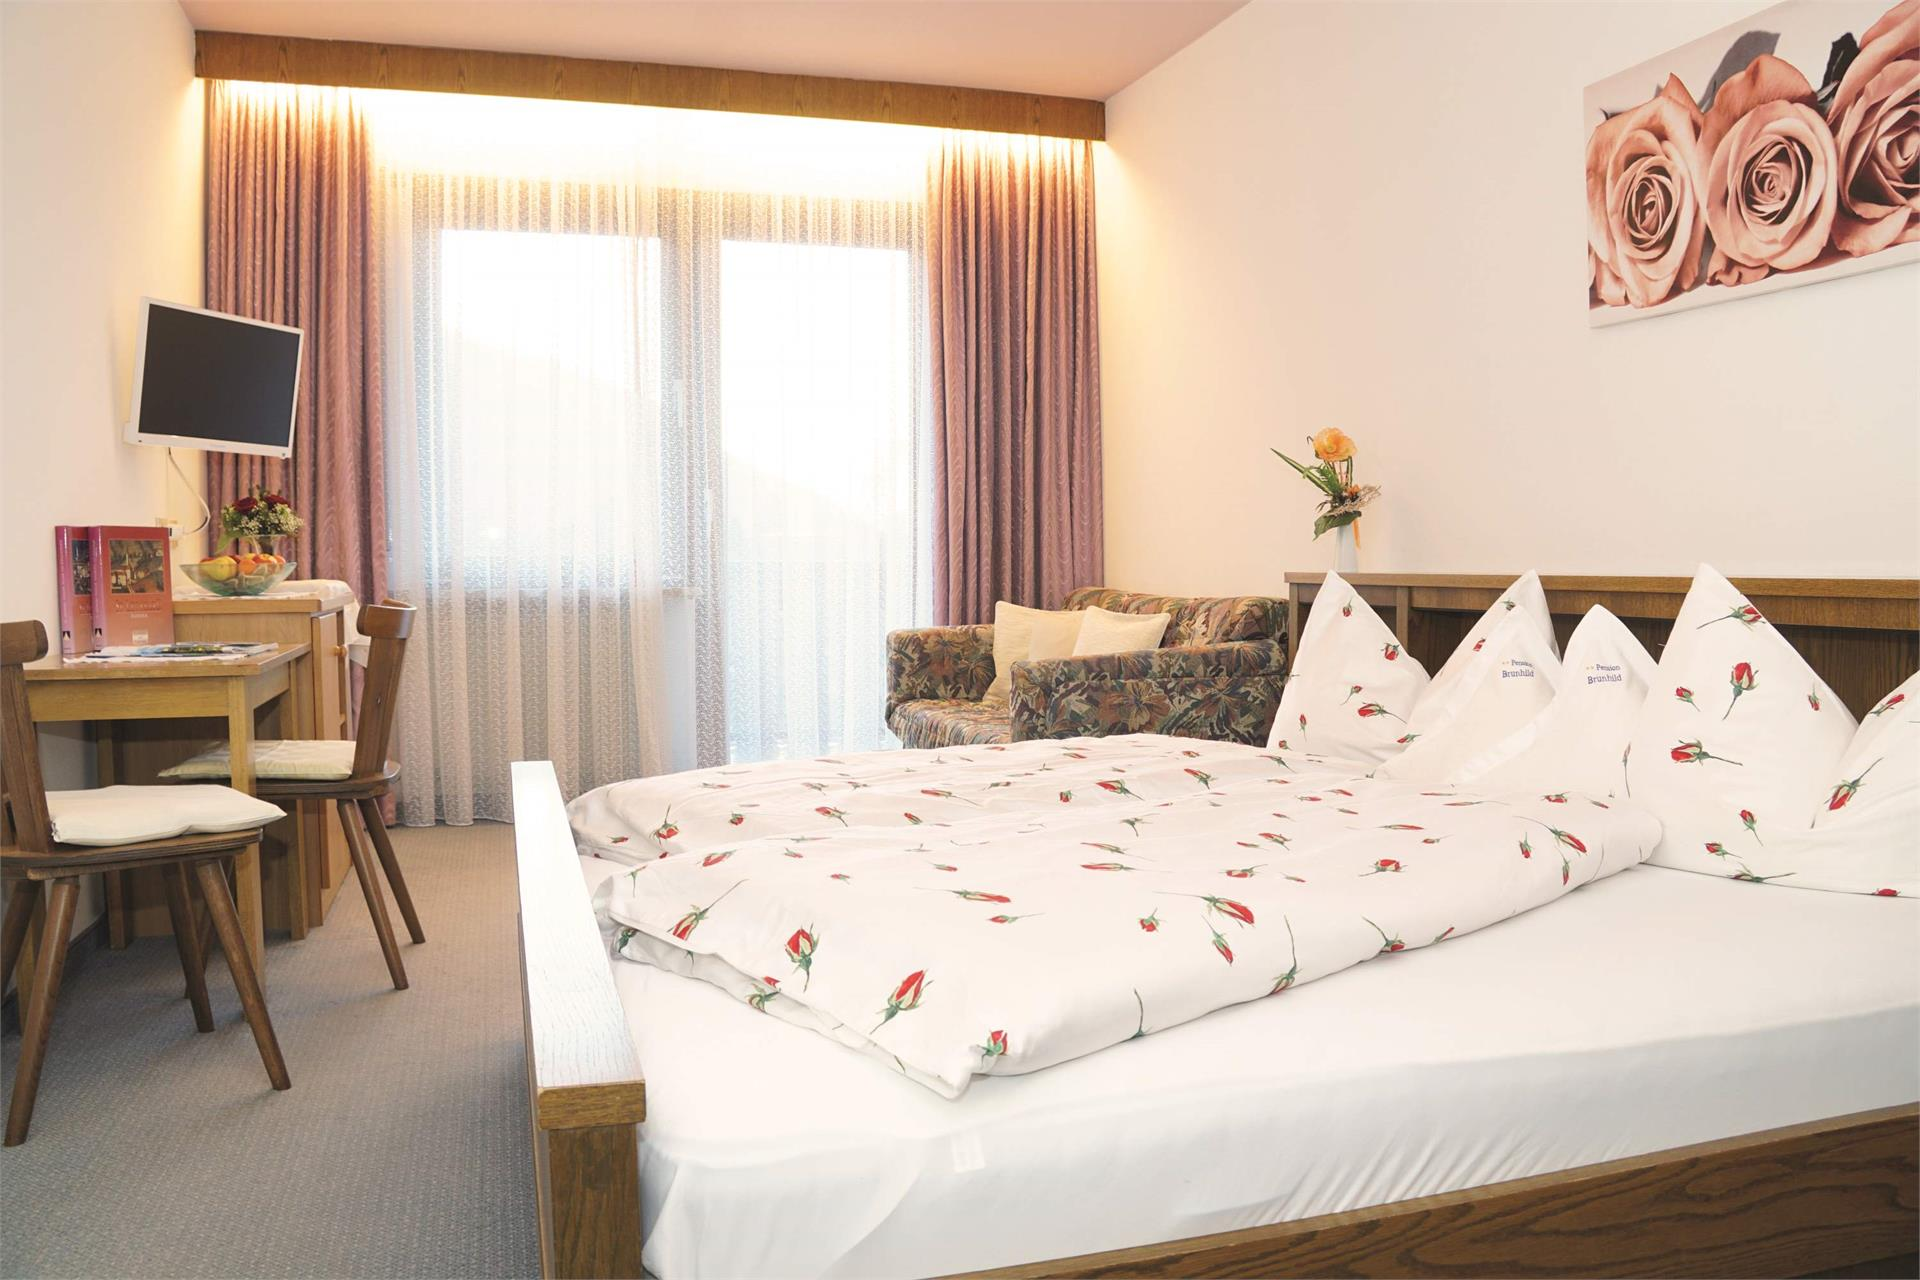 Pension Brunhild - example double room